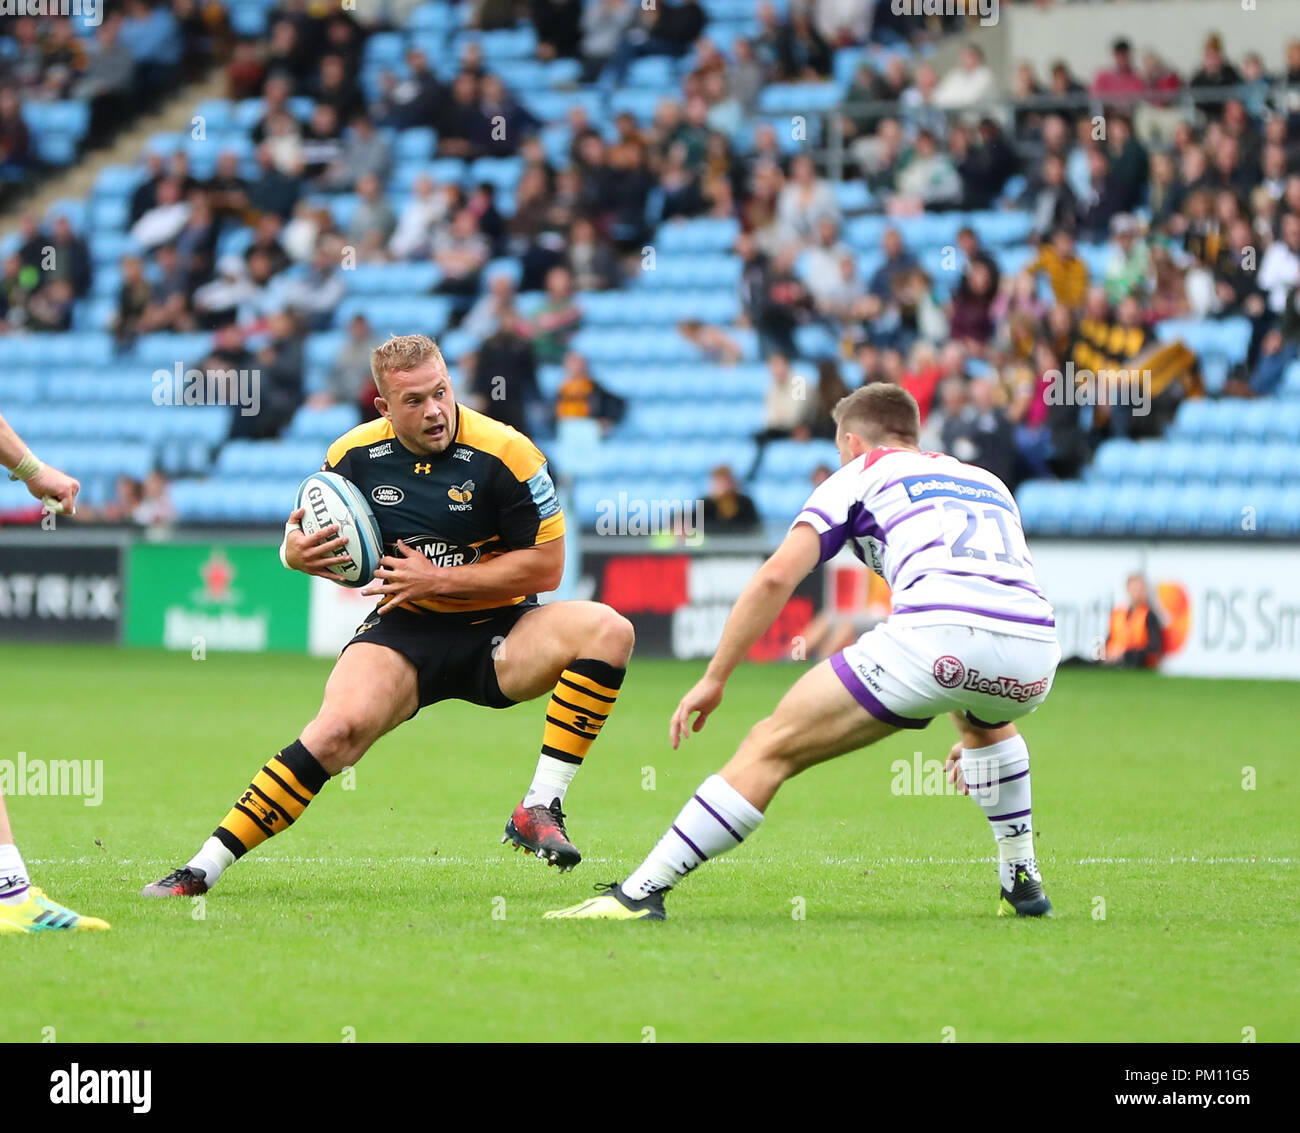 Coventry, UK. 16th September, 2018.   Tom Cruse (Wasps) on the charge during the Gallagher Premiership Rugby Union match between Wasps and Leicester Tigers rfc.  Phil Hutchinson/Alamy Live News - Stock Image